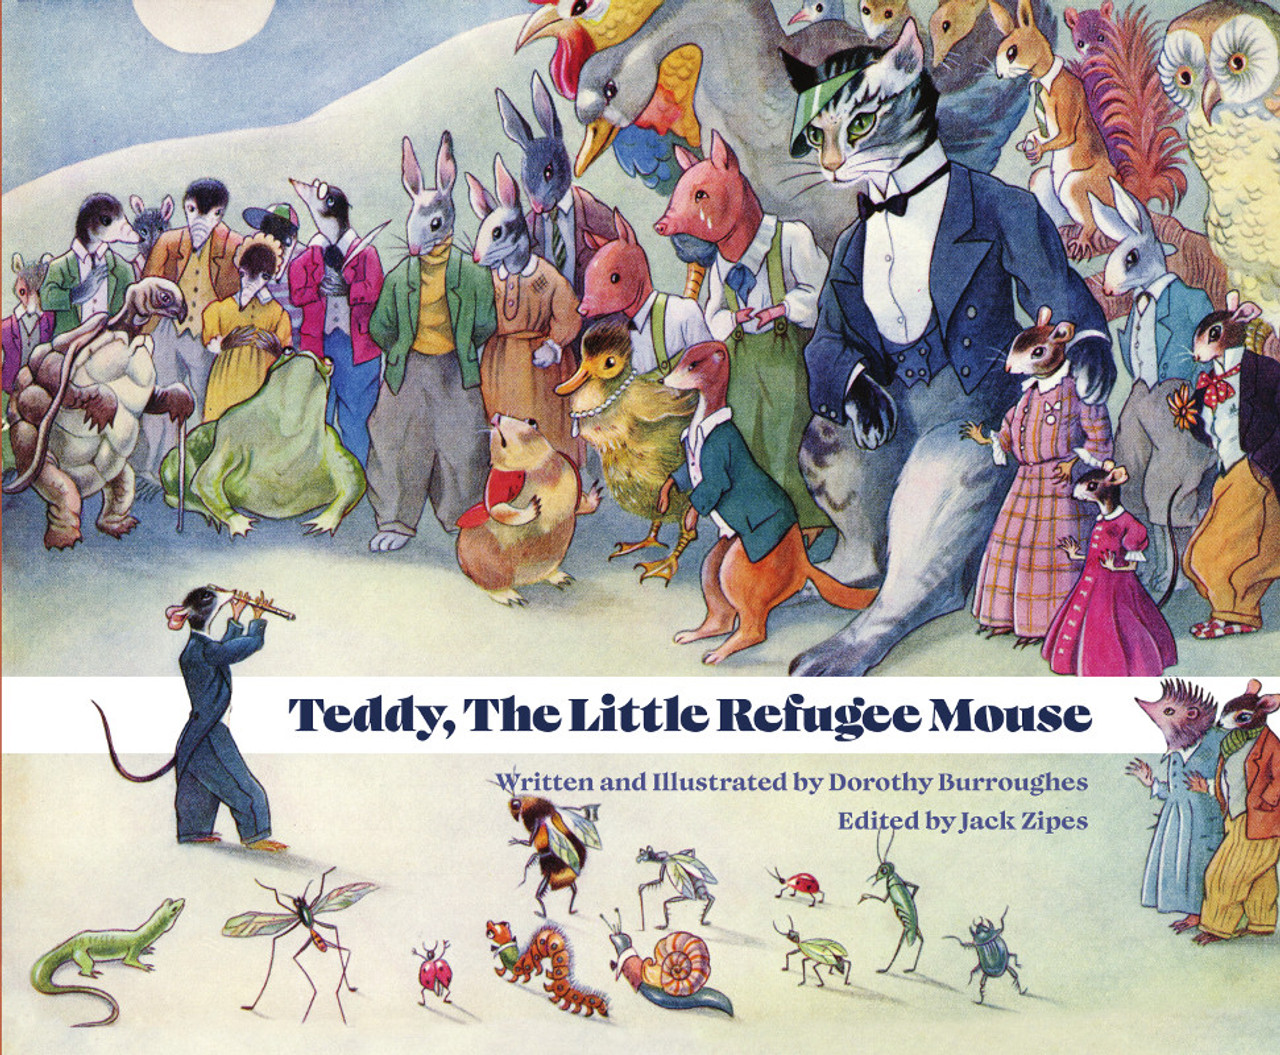 Teddy, The Little Refugee Mouse